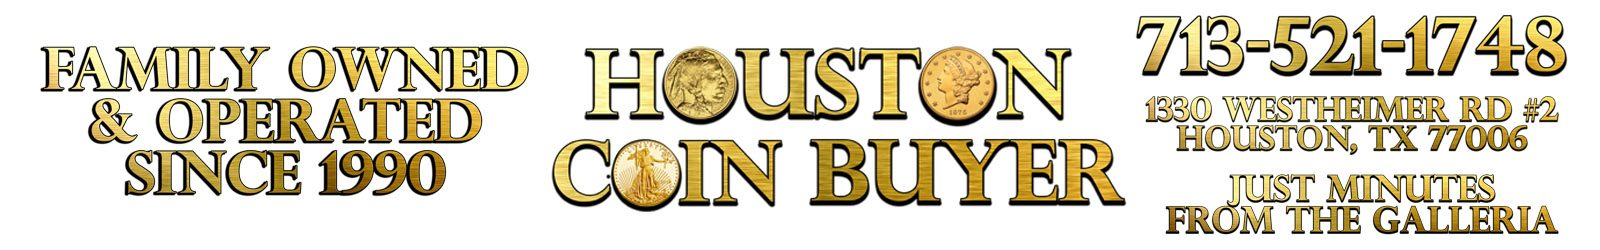 Sell Coins Houston | 713-521-1748 | Buy Coins Houston - Sell